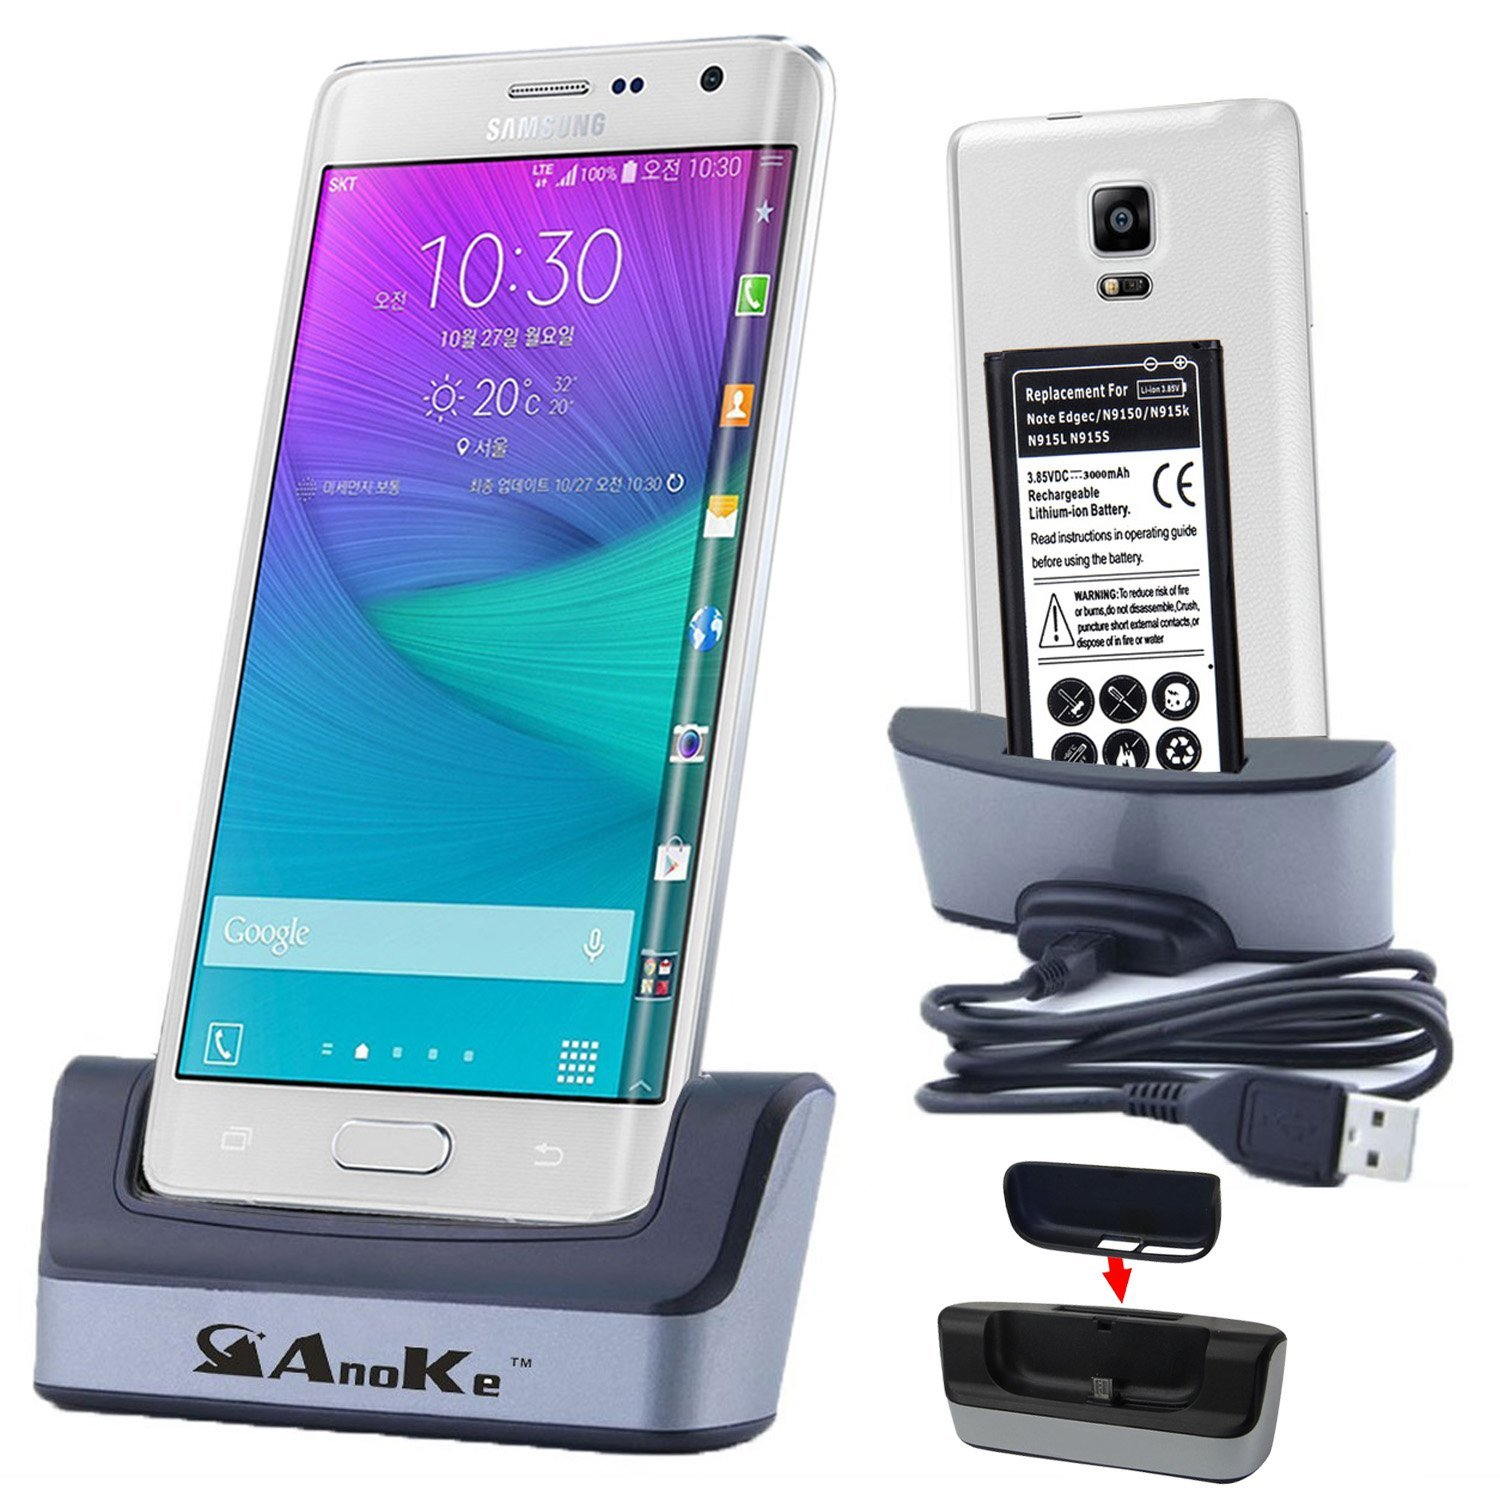 Galaxy Note Edge Charger, Note Edge Battery Charging Station, AnoKe USB 3.0 Dual Sync Desktop Charging Docking Station Cradle - Support Charging Spare Battery for Samsung Galaxy Note Edge Dock